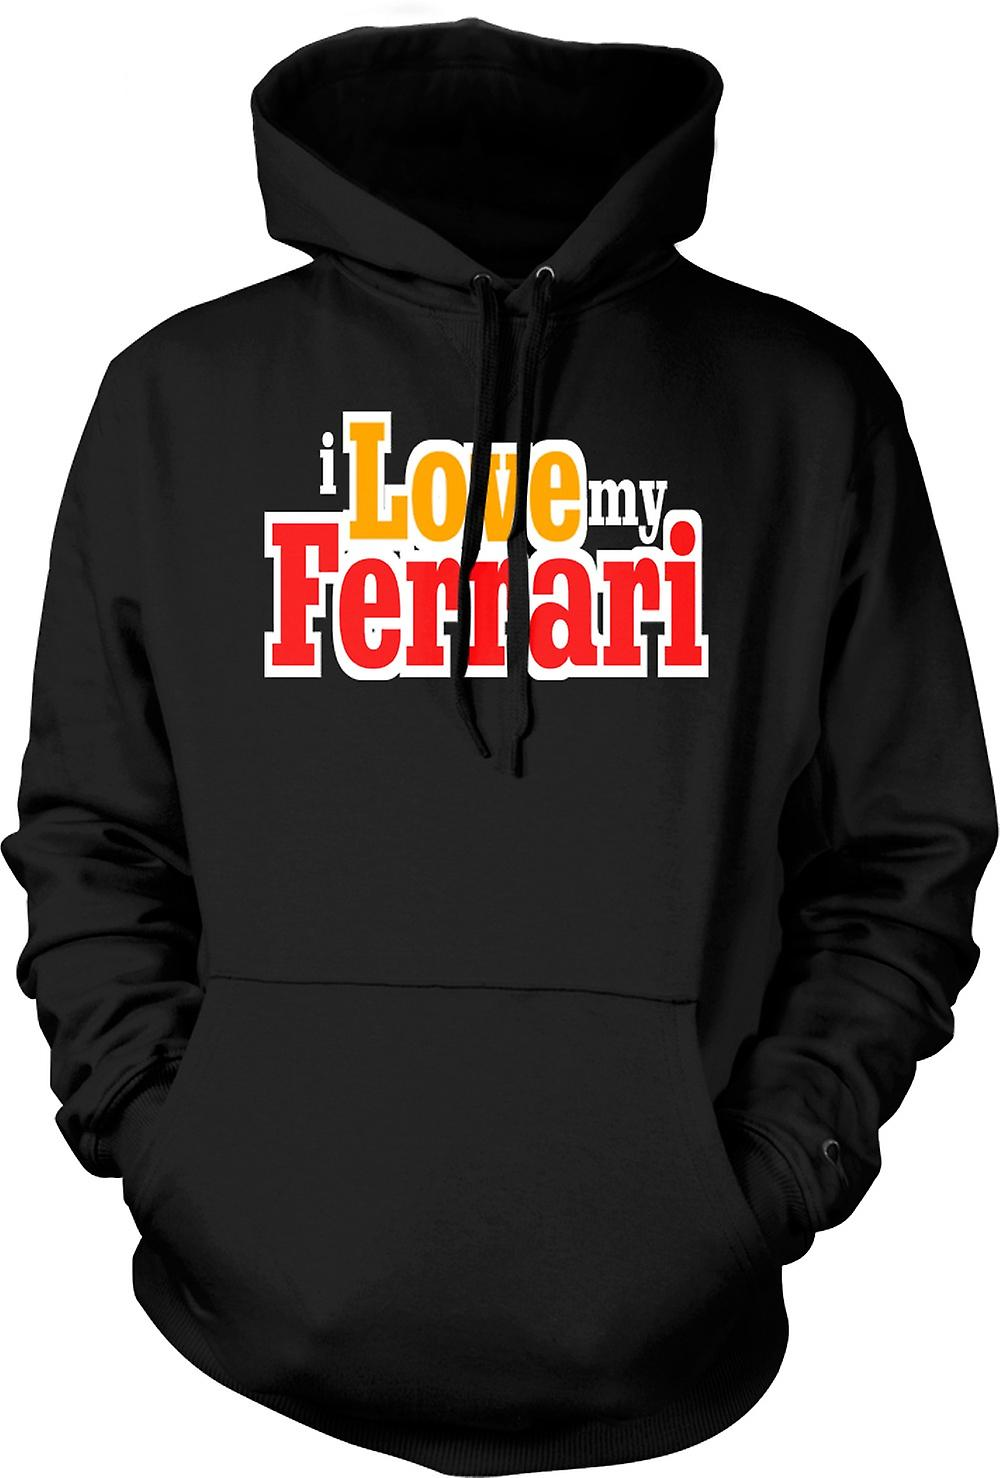 Mens Hoodie - I Love My Ferrari - Car Enthusiast